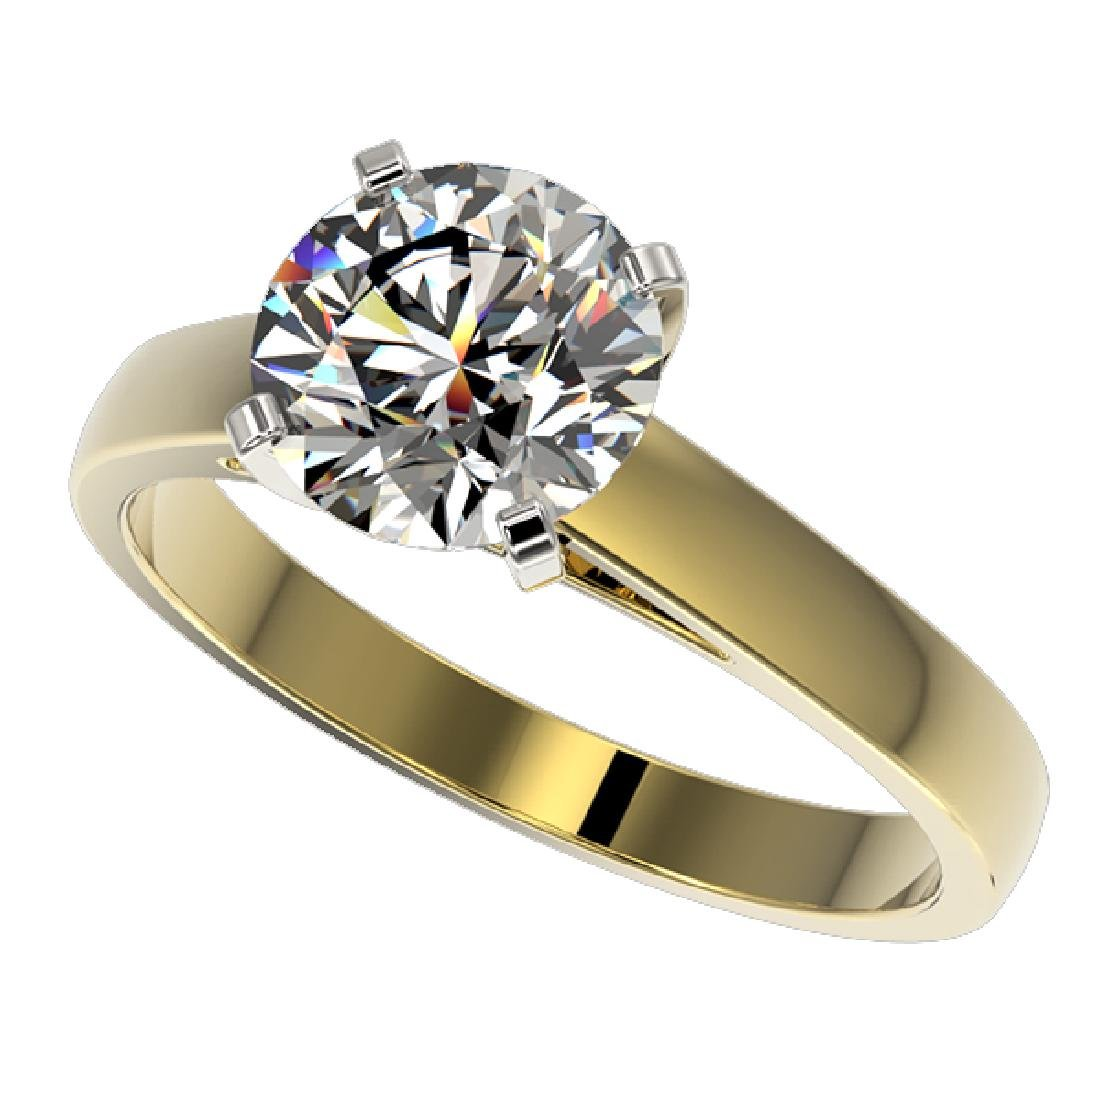 2.05 CTW Certified H-I Quality Diamond Solitaire Ring